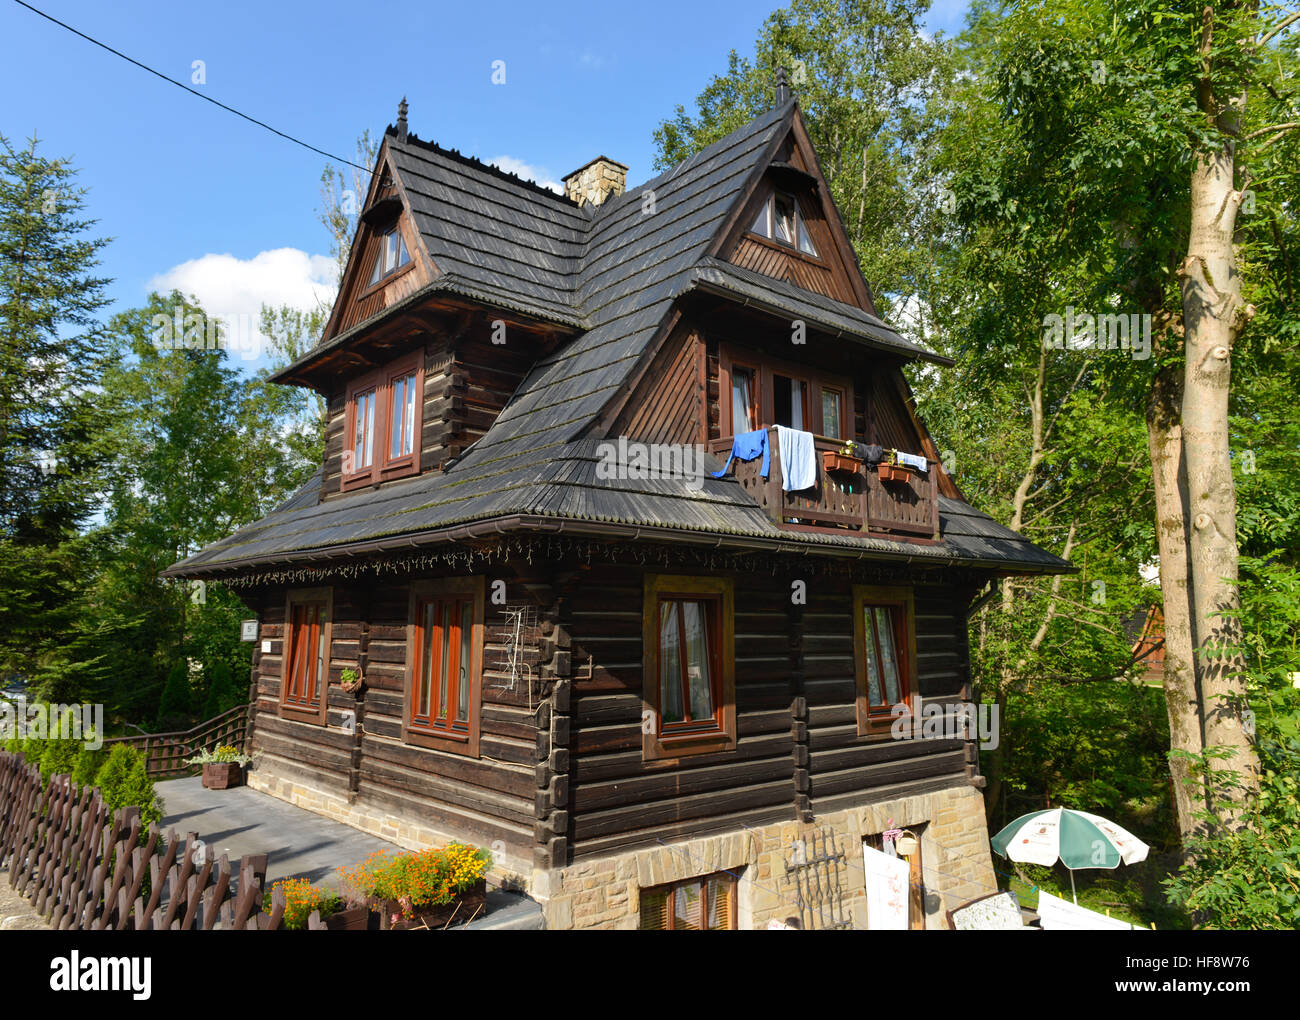 Traditionelles Holzhaus, Strazyska, Zakopane, Polen, Traditional timber house, Poland - Stock Image